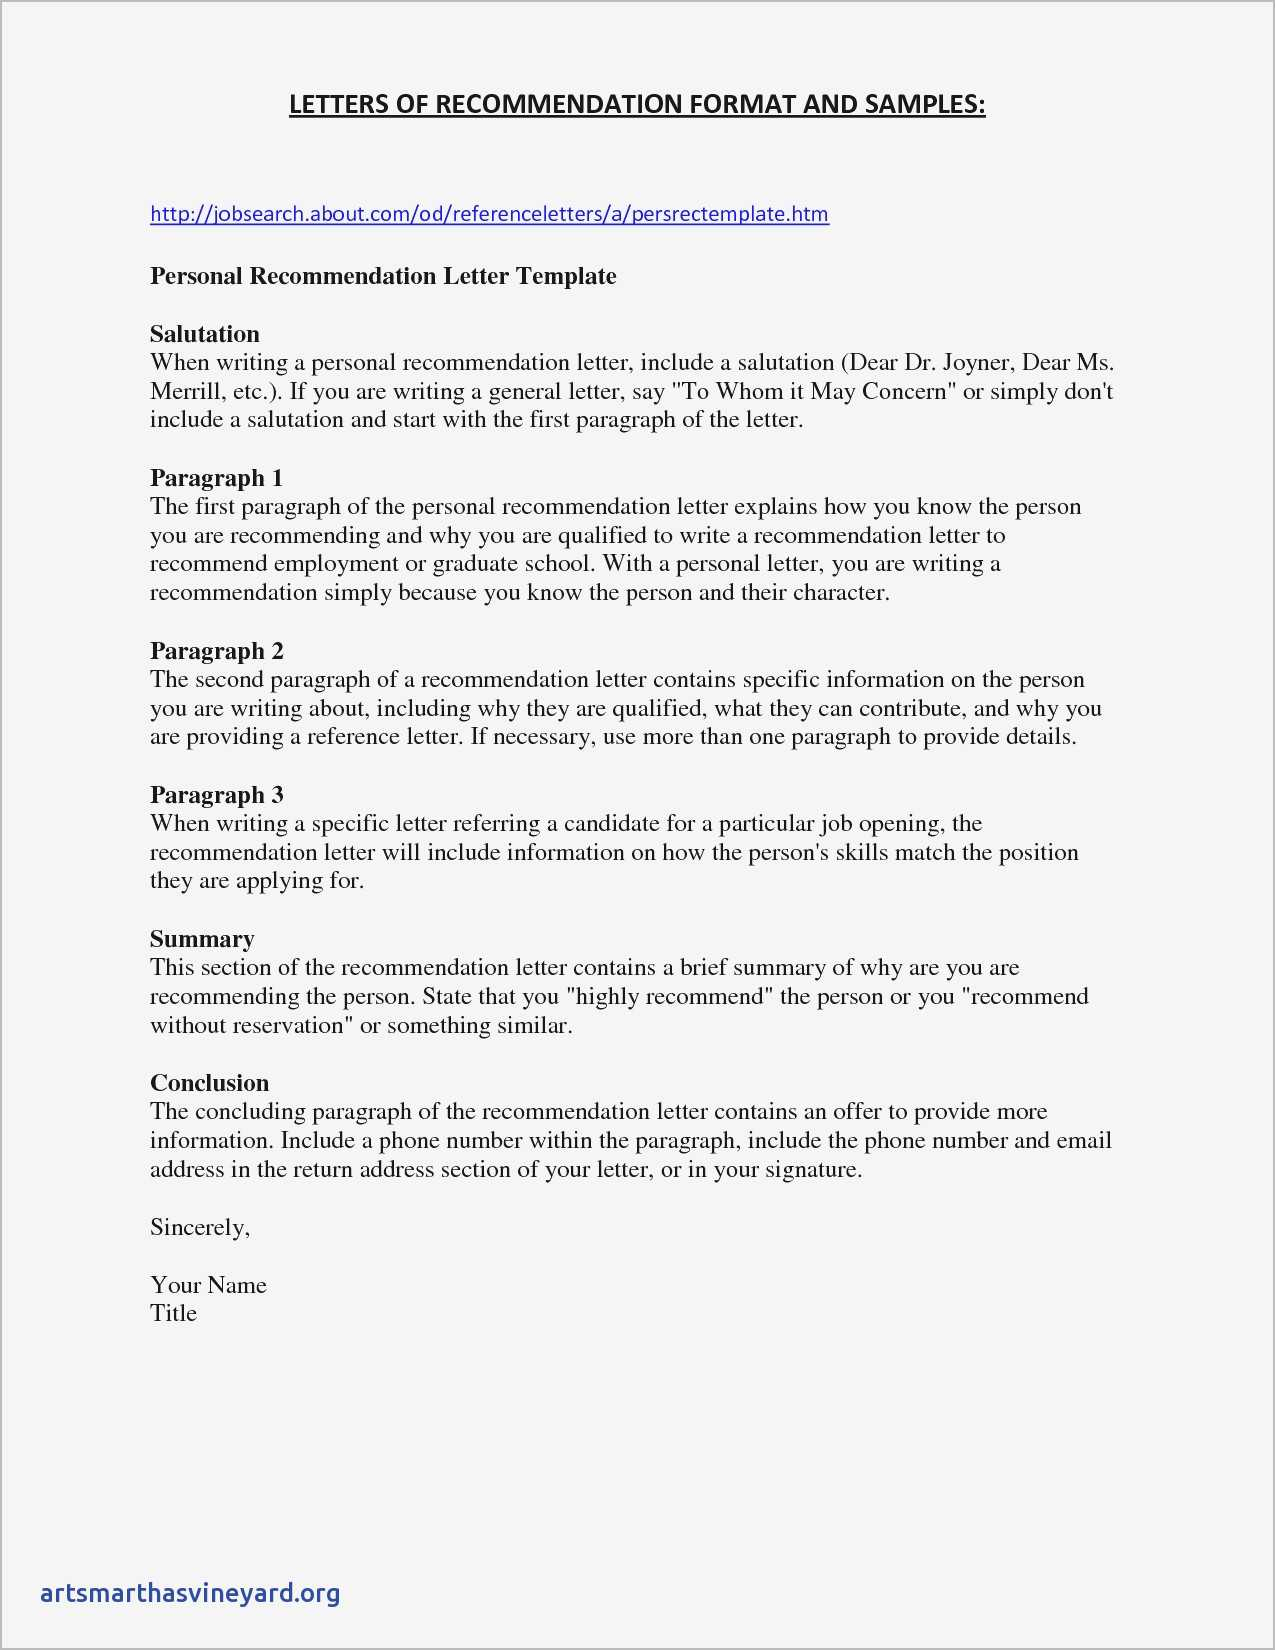 Sample Character Reference Letter for A Friend Template - Sample Personal Reference Letter for A Friend Samples From Character